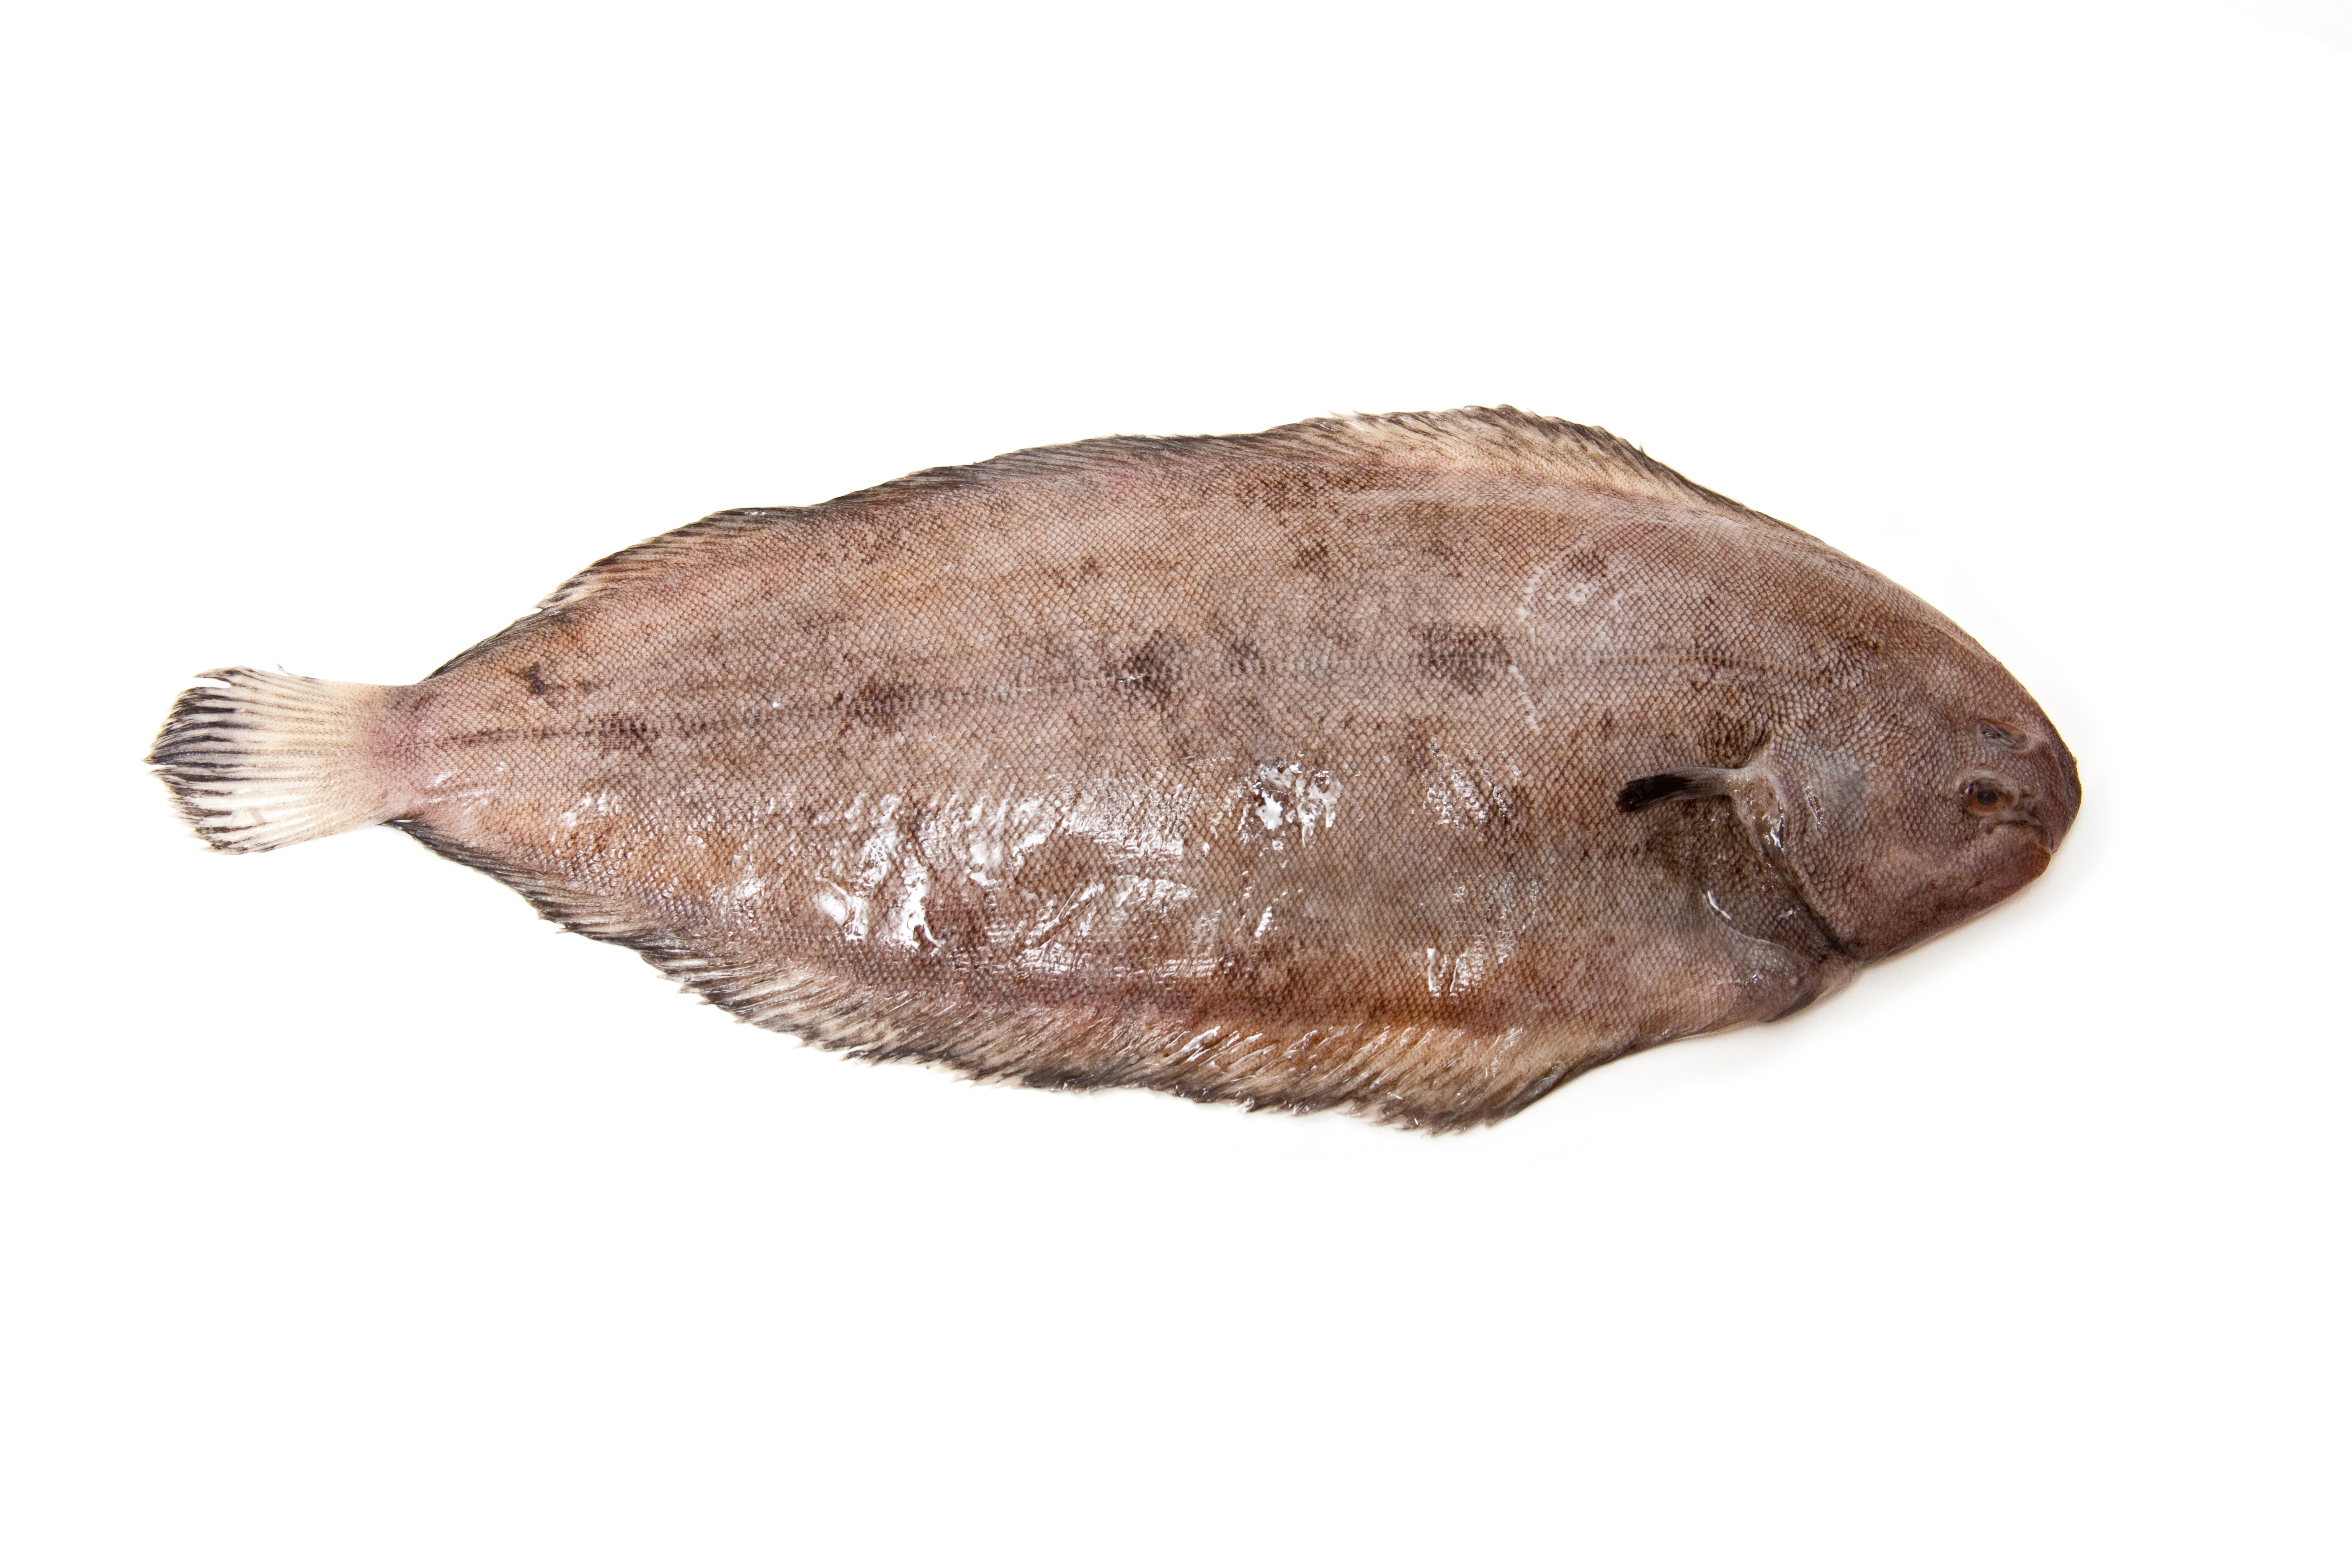 Head on gutted iqf dover sole stavis seafoods for Dover sole fish